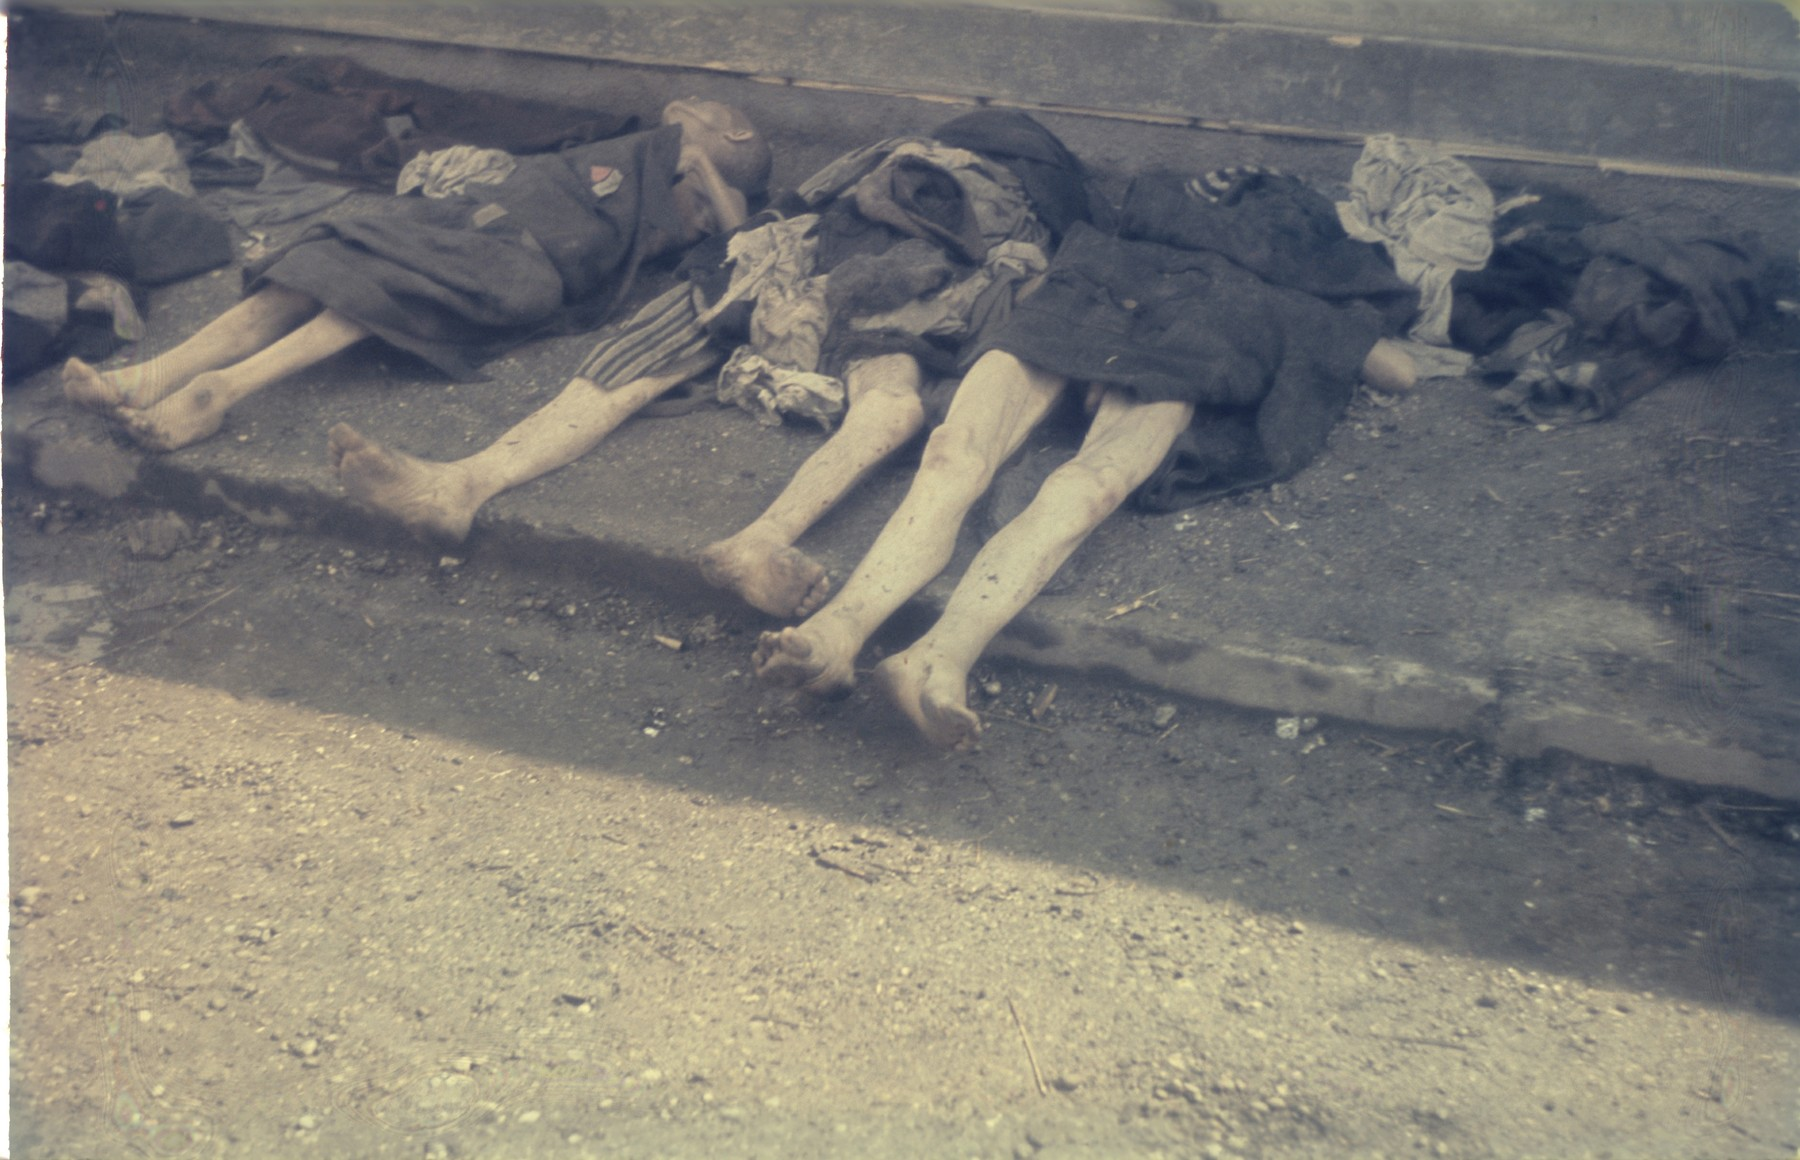 A row of corpses laid out on the pavement in the newly liberated Dachau concentration camp.